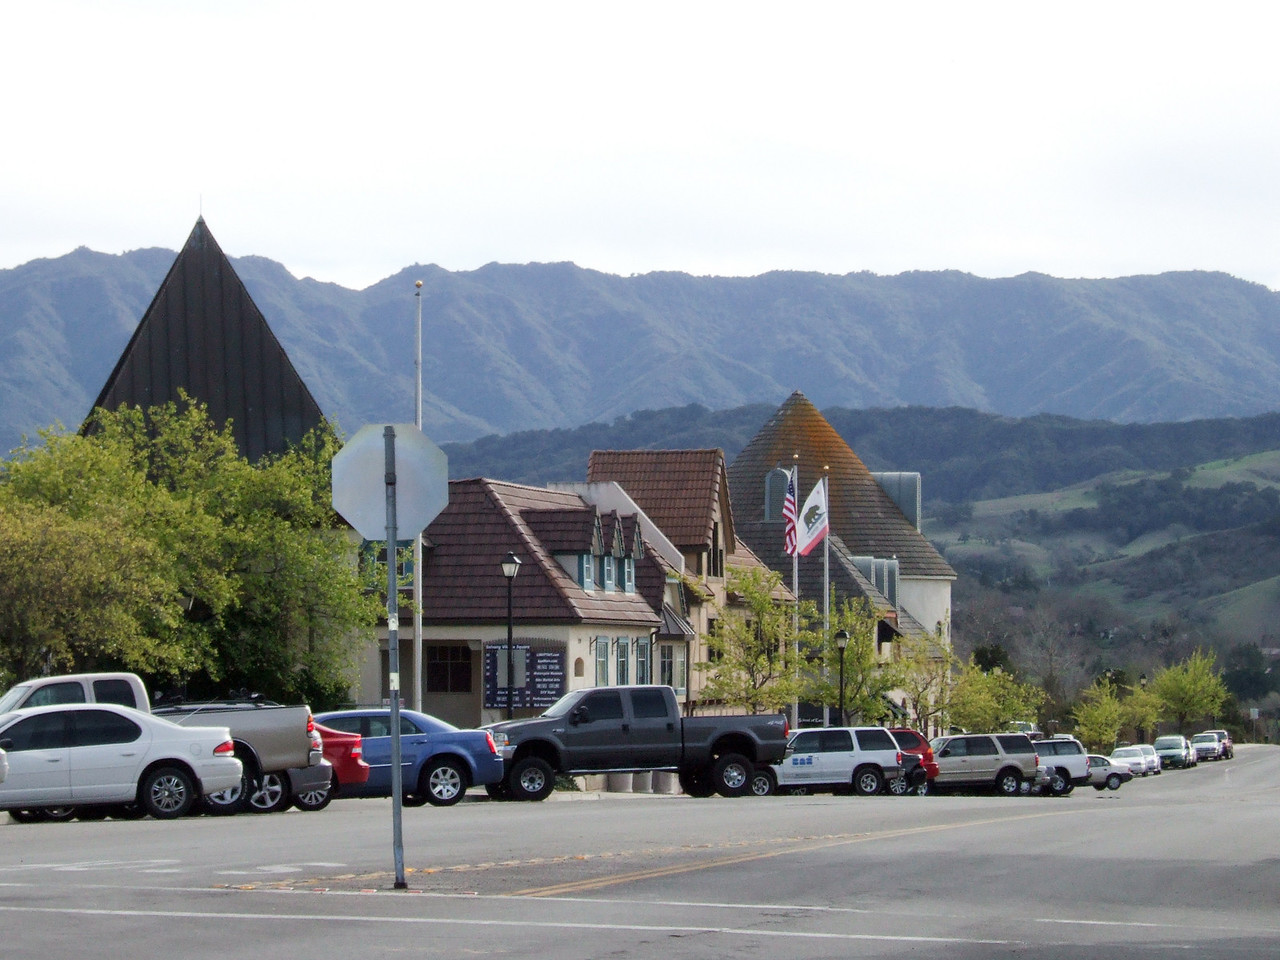 Girls' day out in Solvang (Image taken with FinePix F10 at ISO 200, f8.0, 1/400 sec and 24mm)